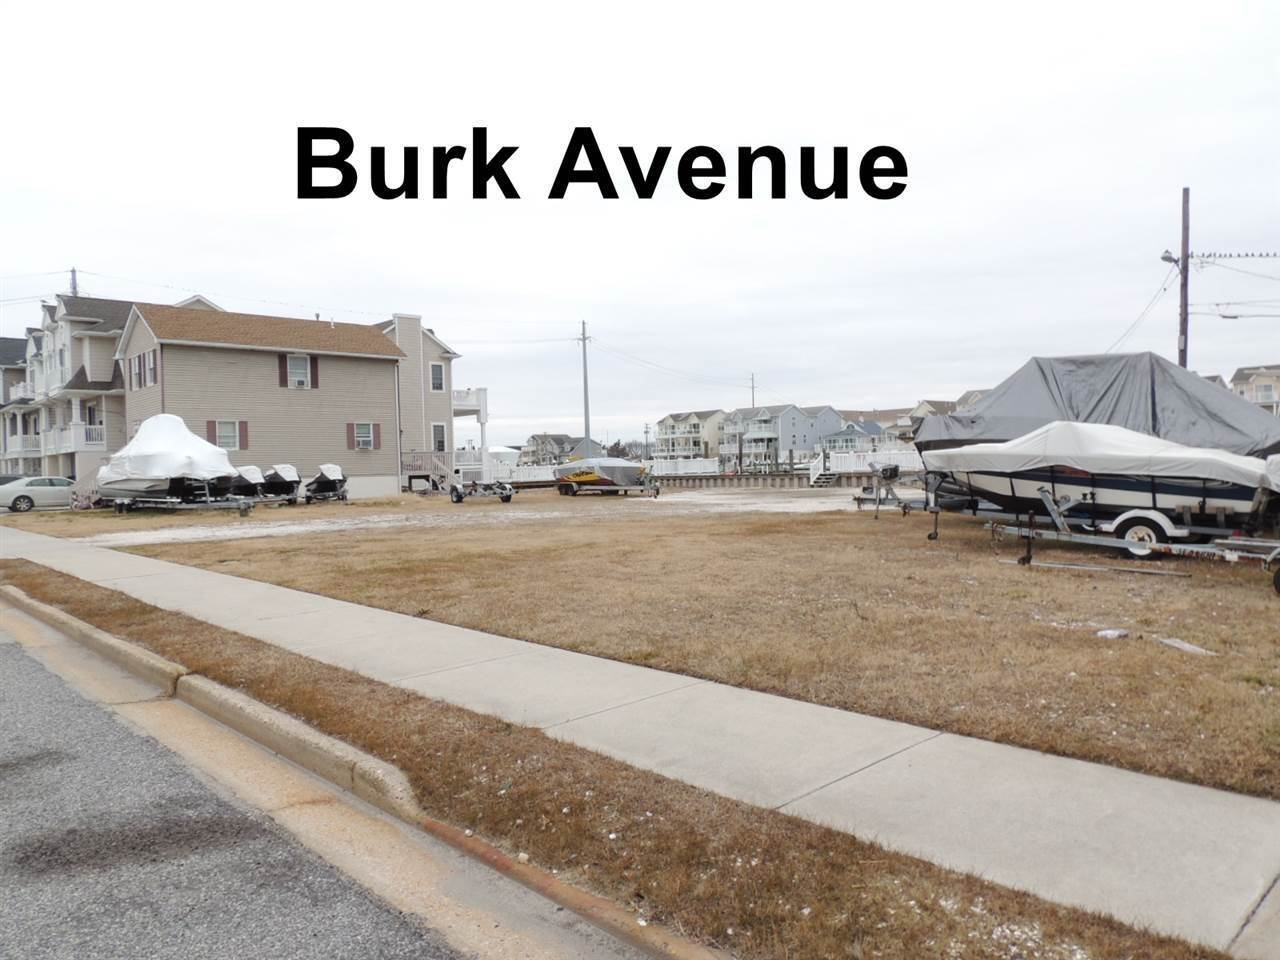 Land for Sale at 515-525 W Burk Avenue Wildwood, New Jersey 08260 United States